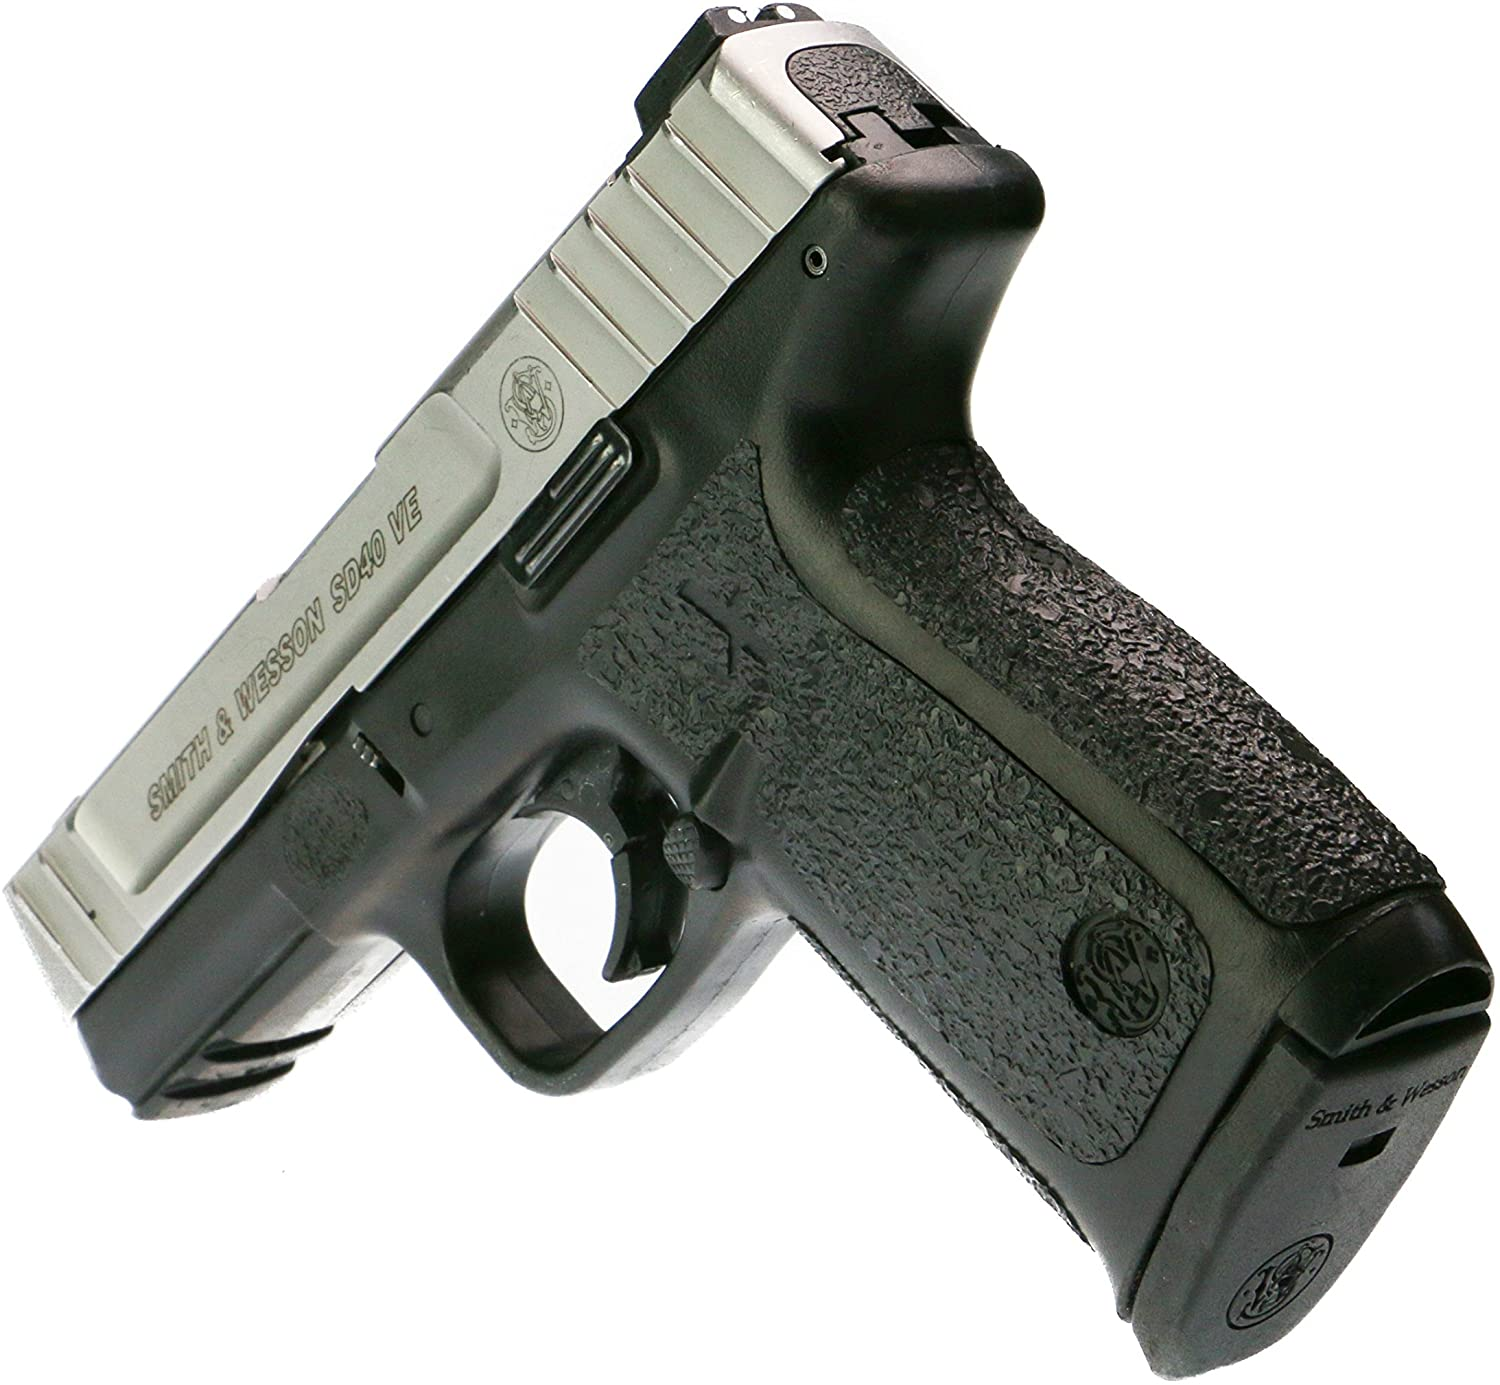 Foxx Grips -Gun Max 50% OFF Smith Wesson SD9 SD40 Quantity limited C SD40VE SD9VE